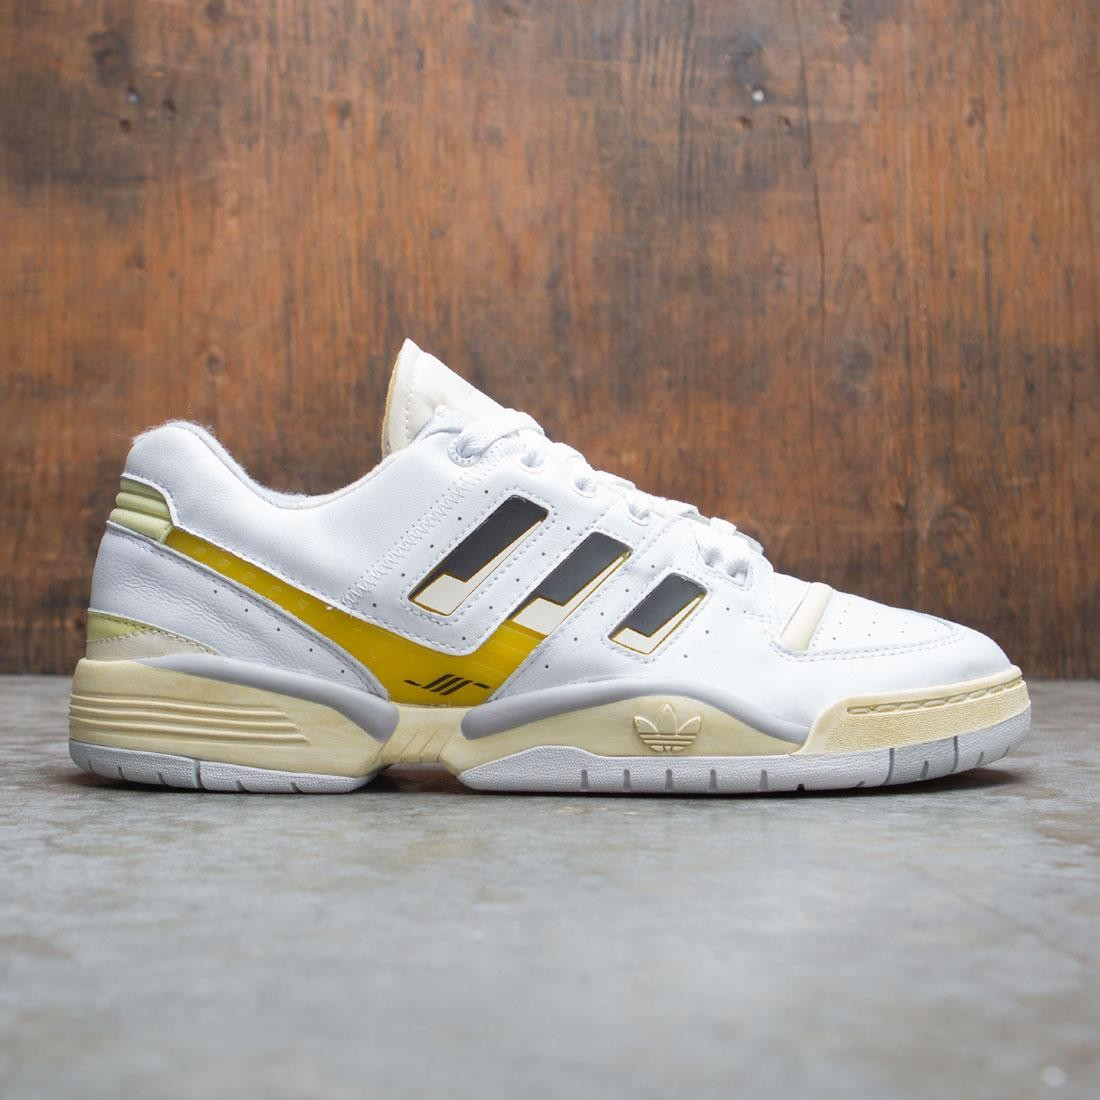 Adidas Consortium x Highs And Lows Men Torsion Edberg (white / core black / blush yellow)